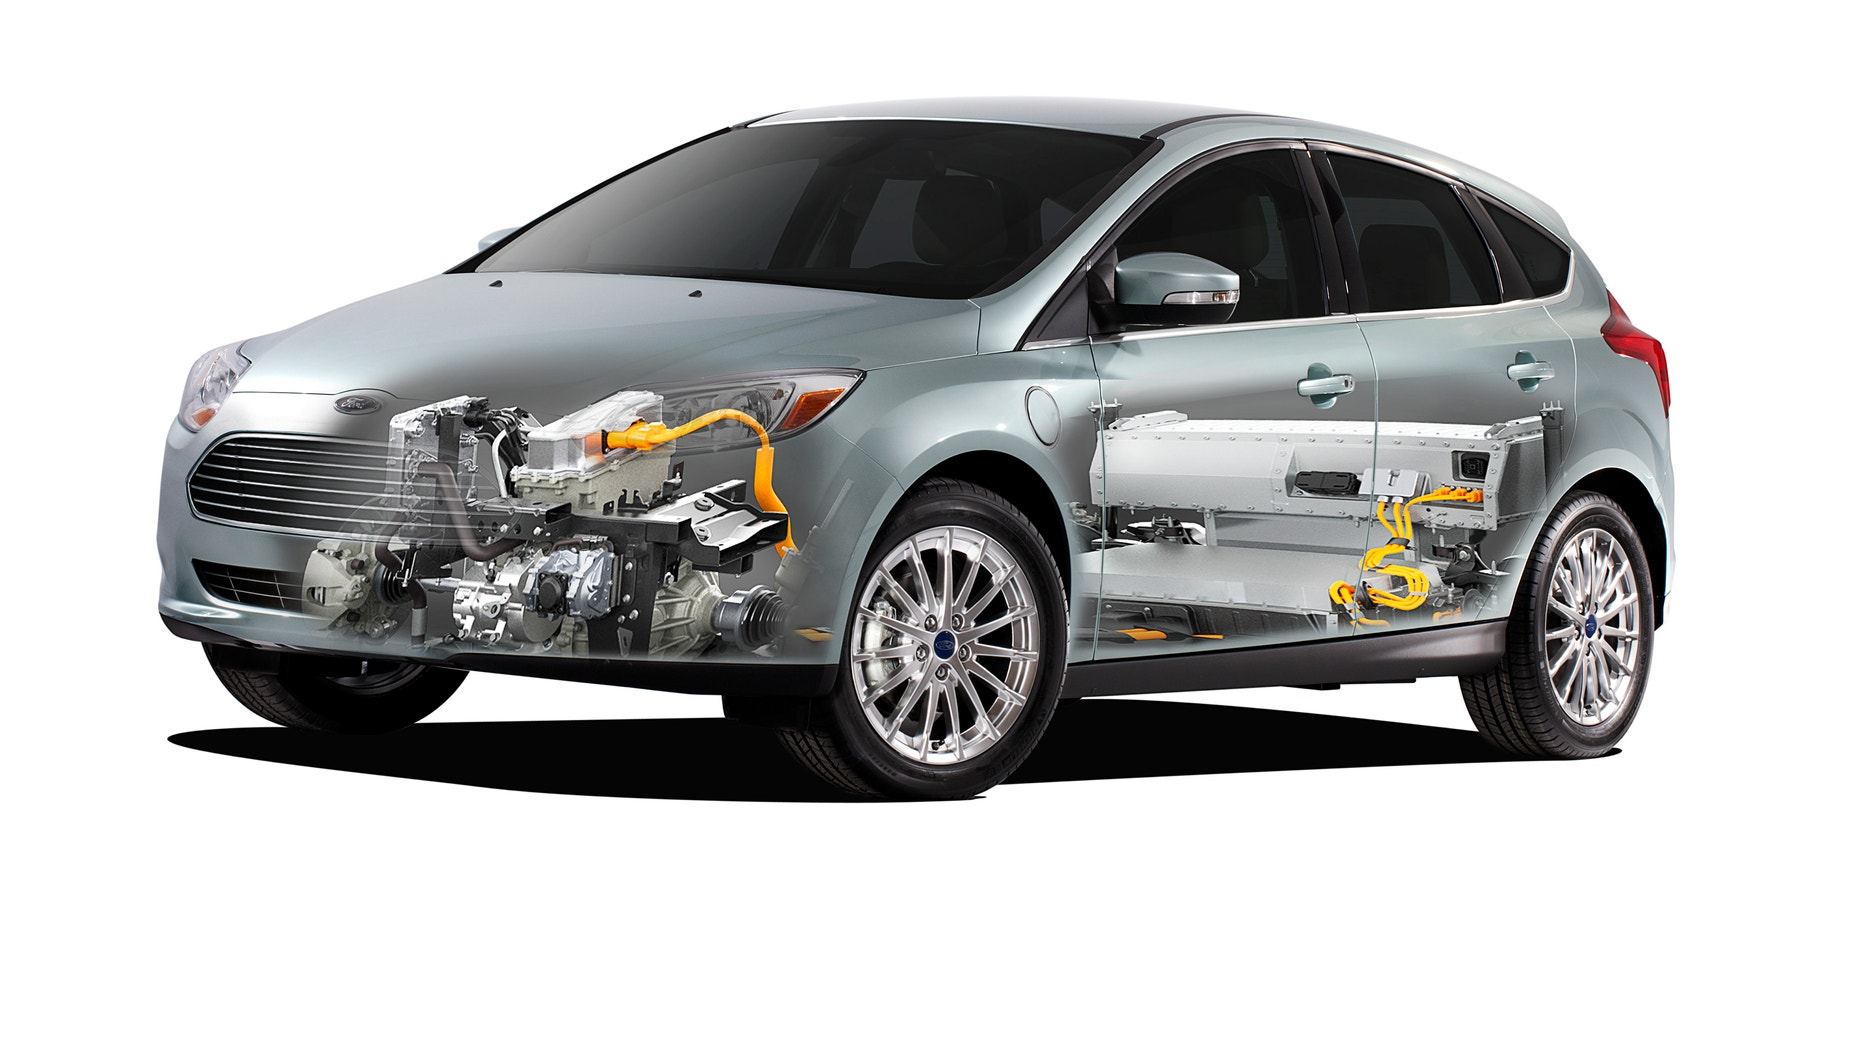 2017 Ford Focus Electric Is Expected To Be The First All